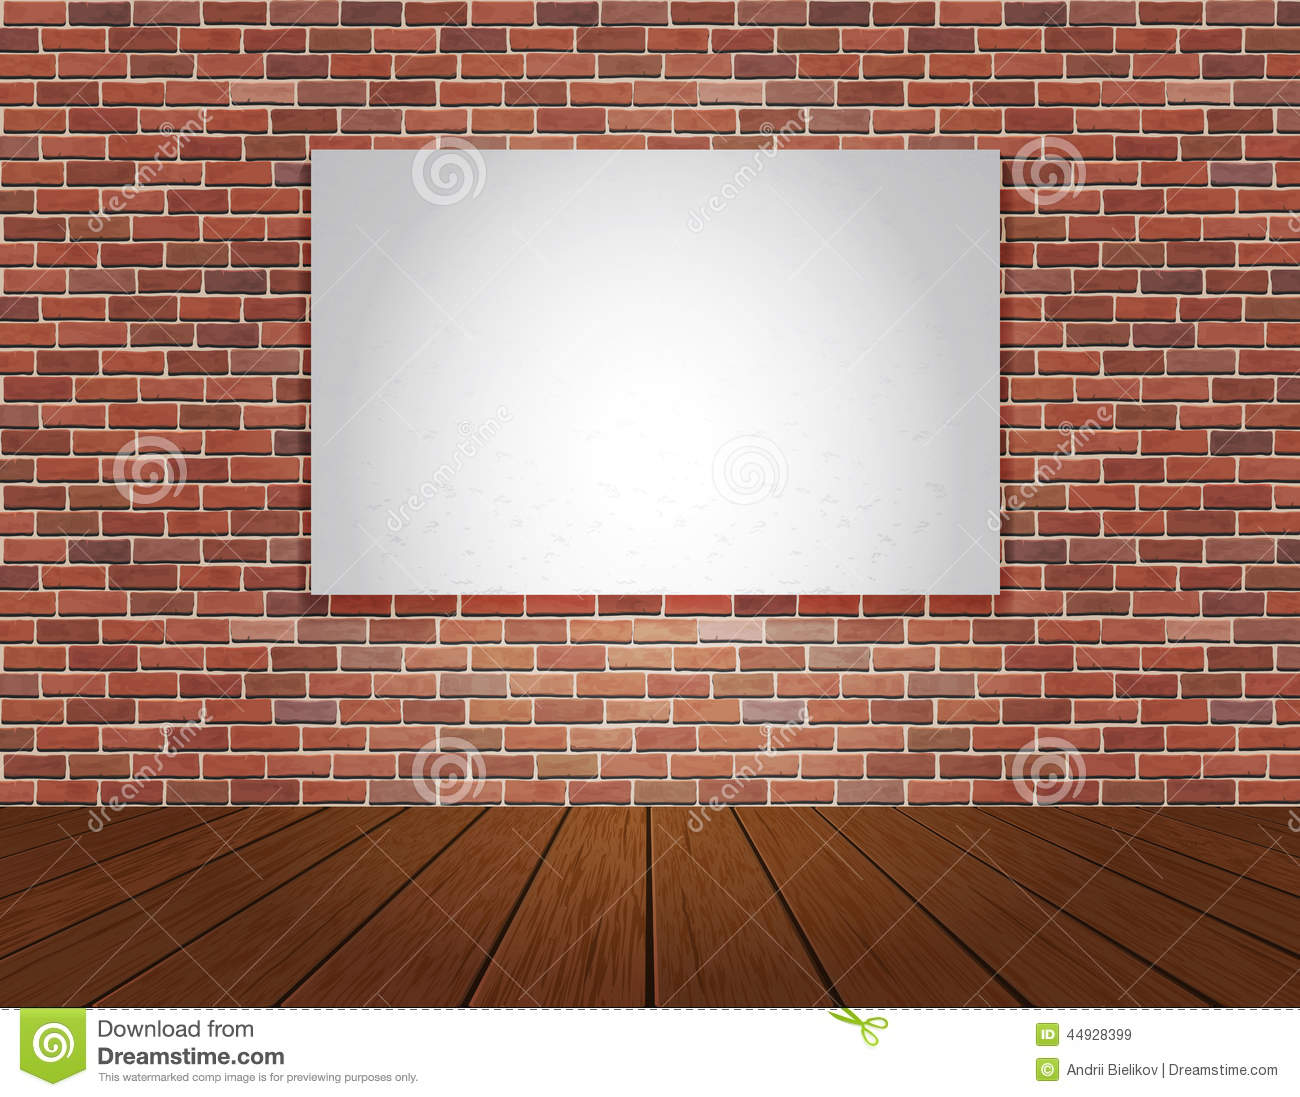 Brick Vector Picture Brick Veneers: Brick Wall And Wood Floor Background Stock Photo